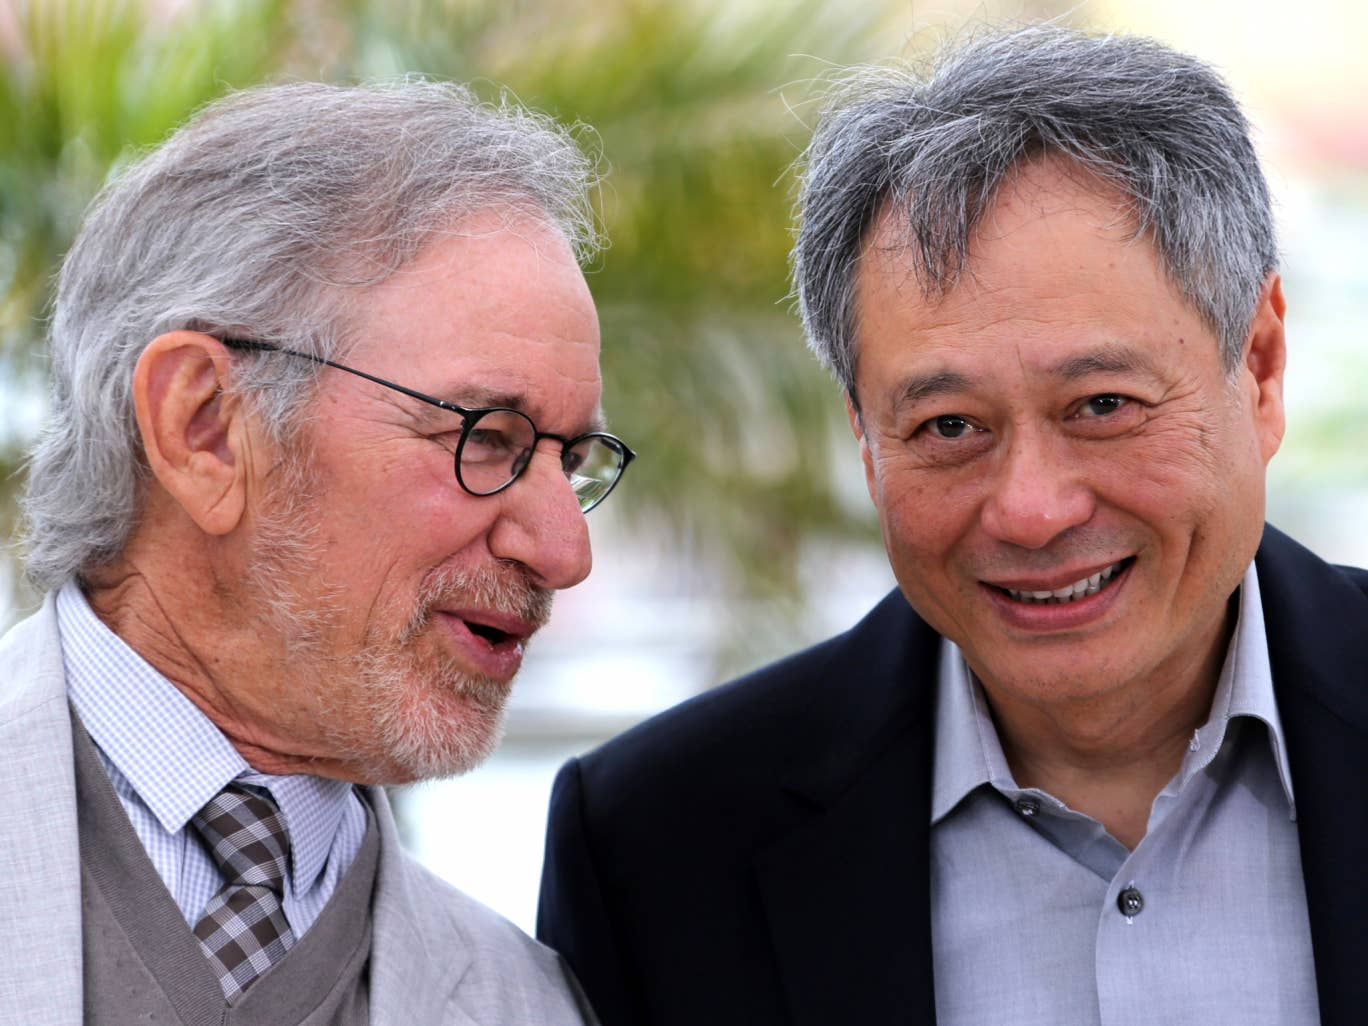 Steven Spielberg and Ang Lee at Cannes